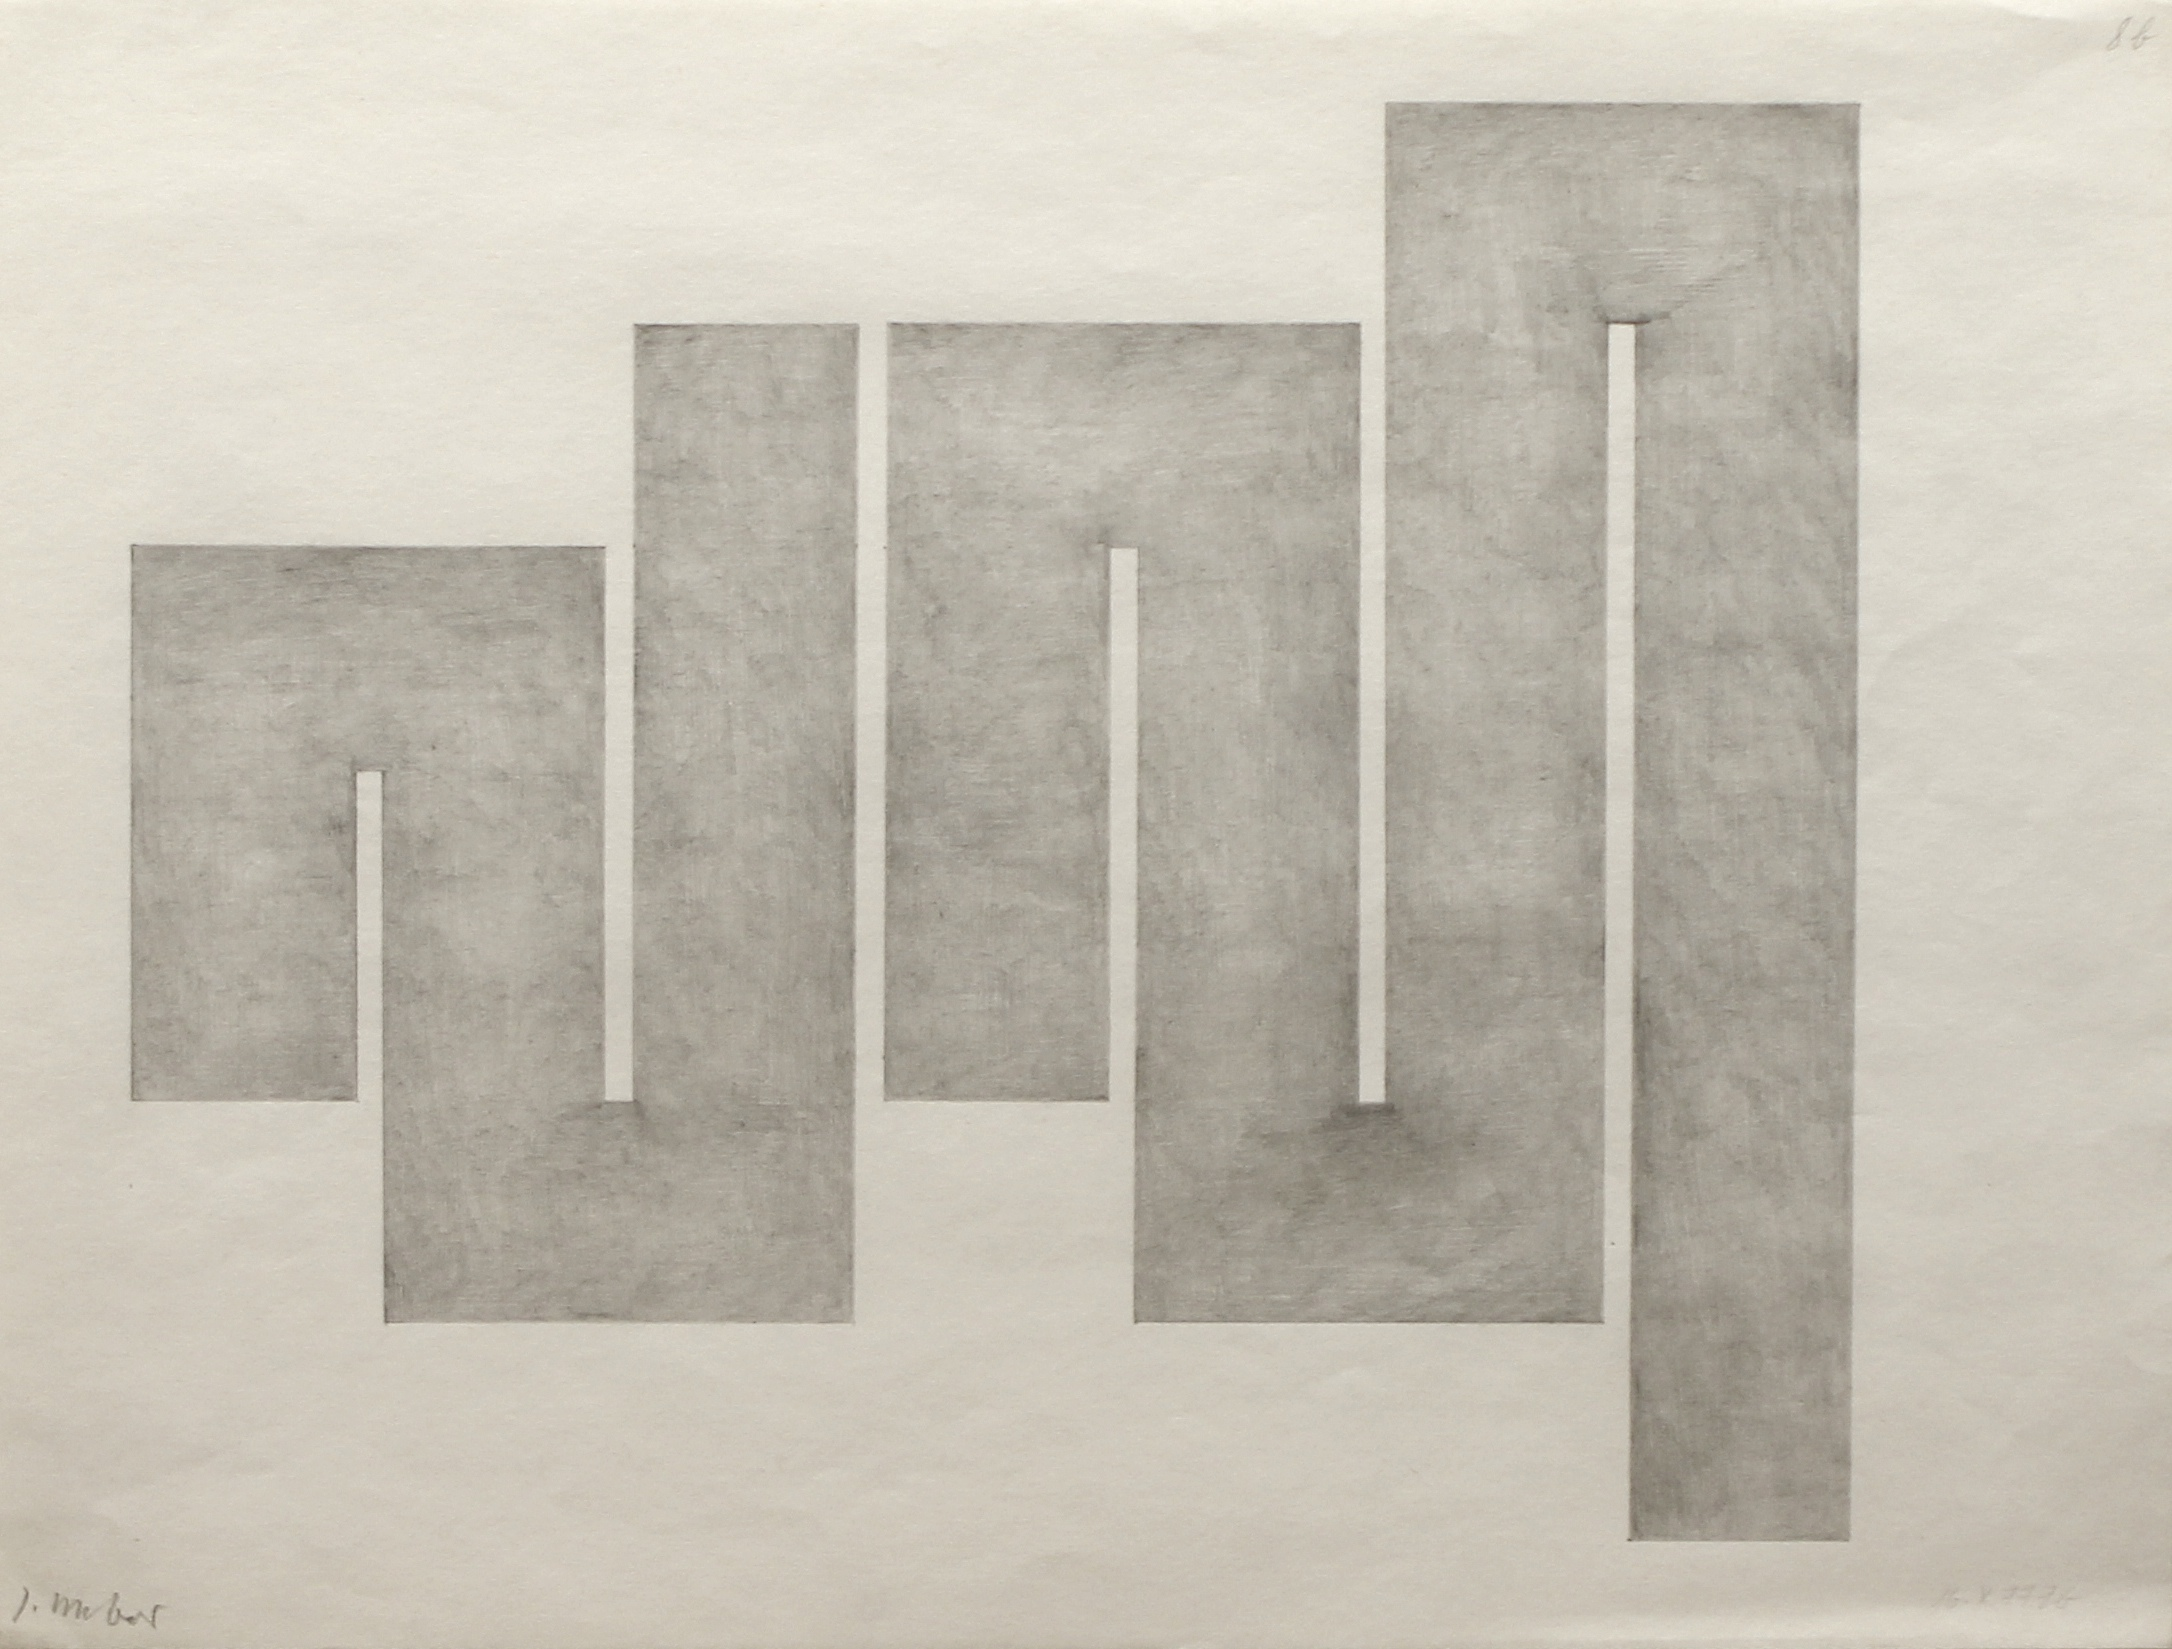 Untitled (6b) 14 October 1977, pencil on paper, 30 x 39.5 cm, 1977